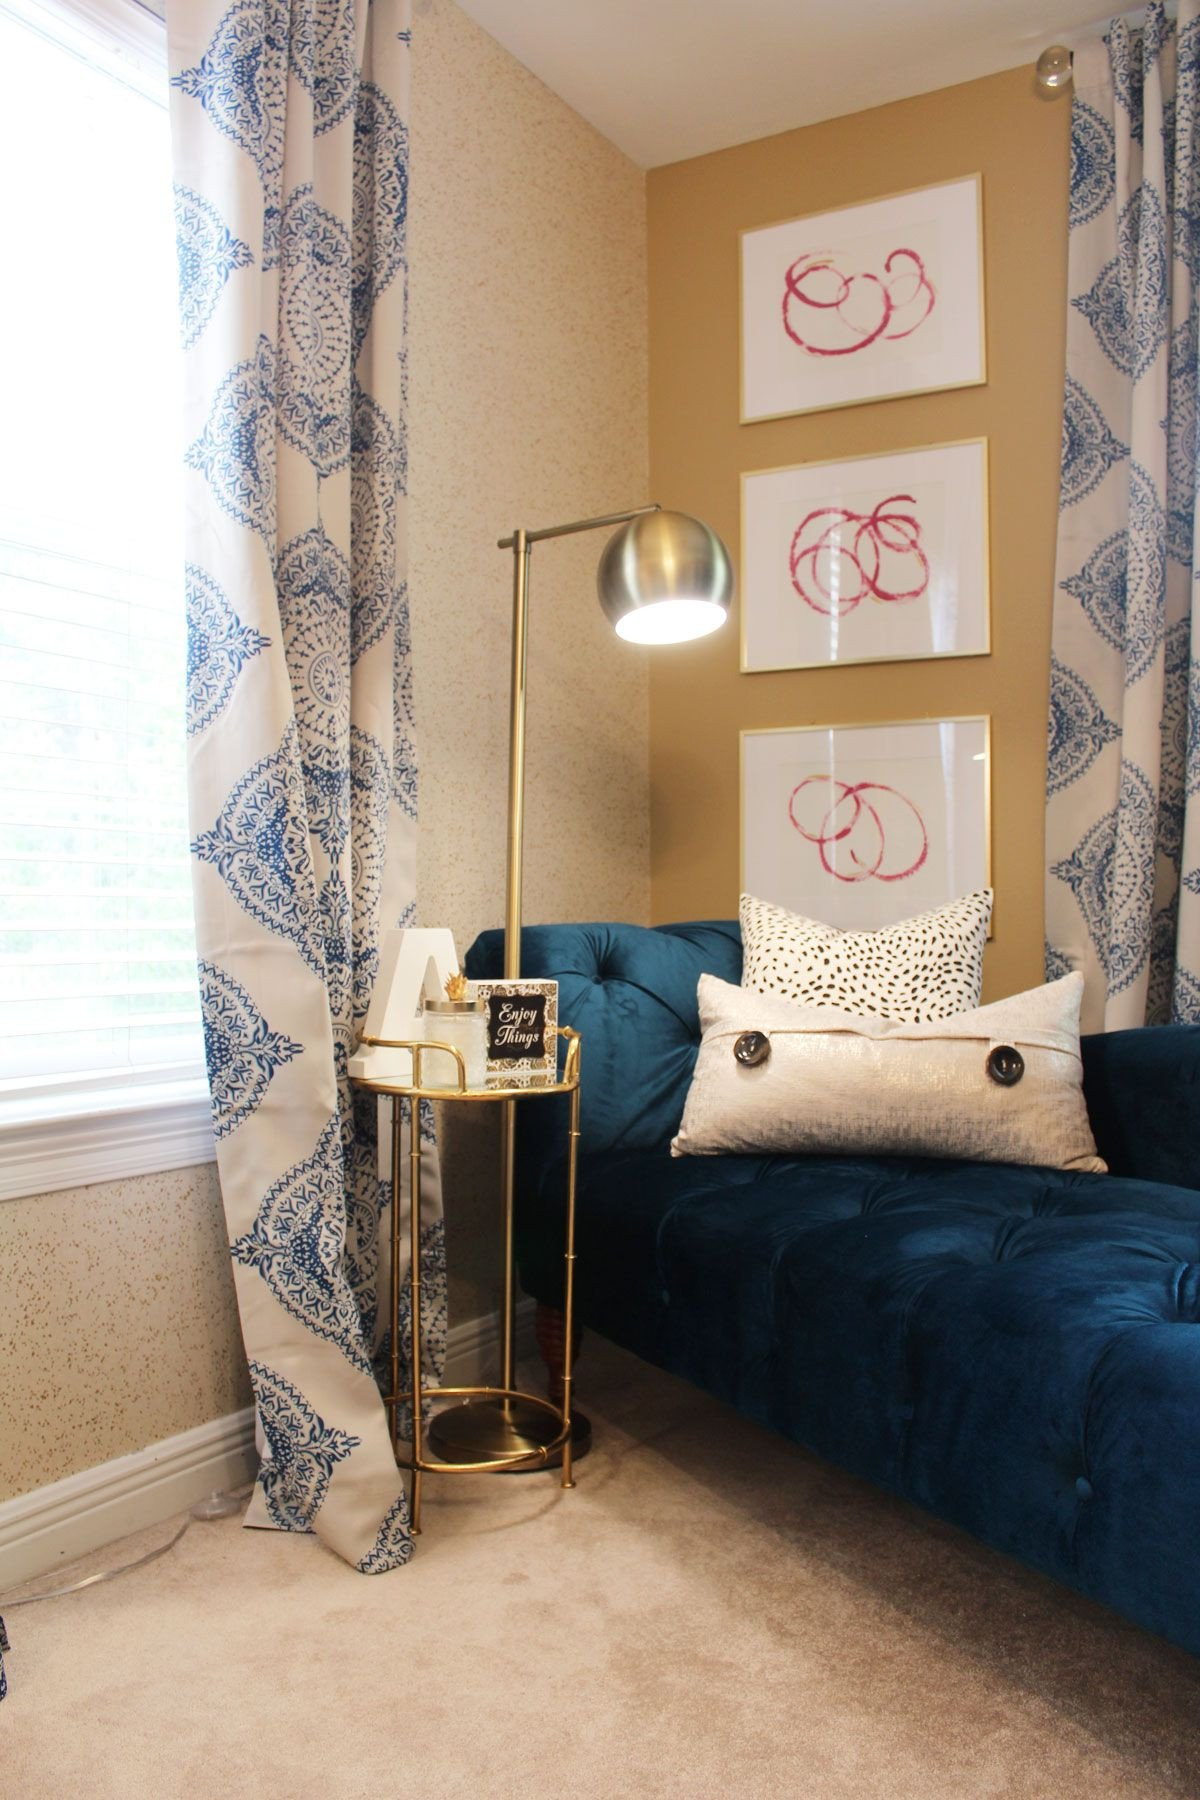 Pink and Gold Bedroom Ideas Fresh Pink and Blue Transitional Bedroom Reveal before & after